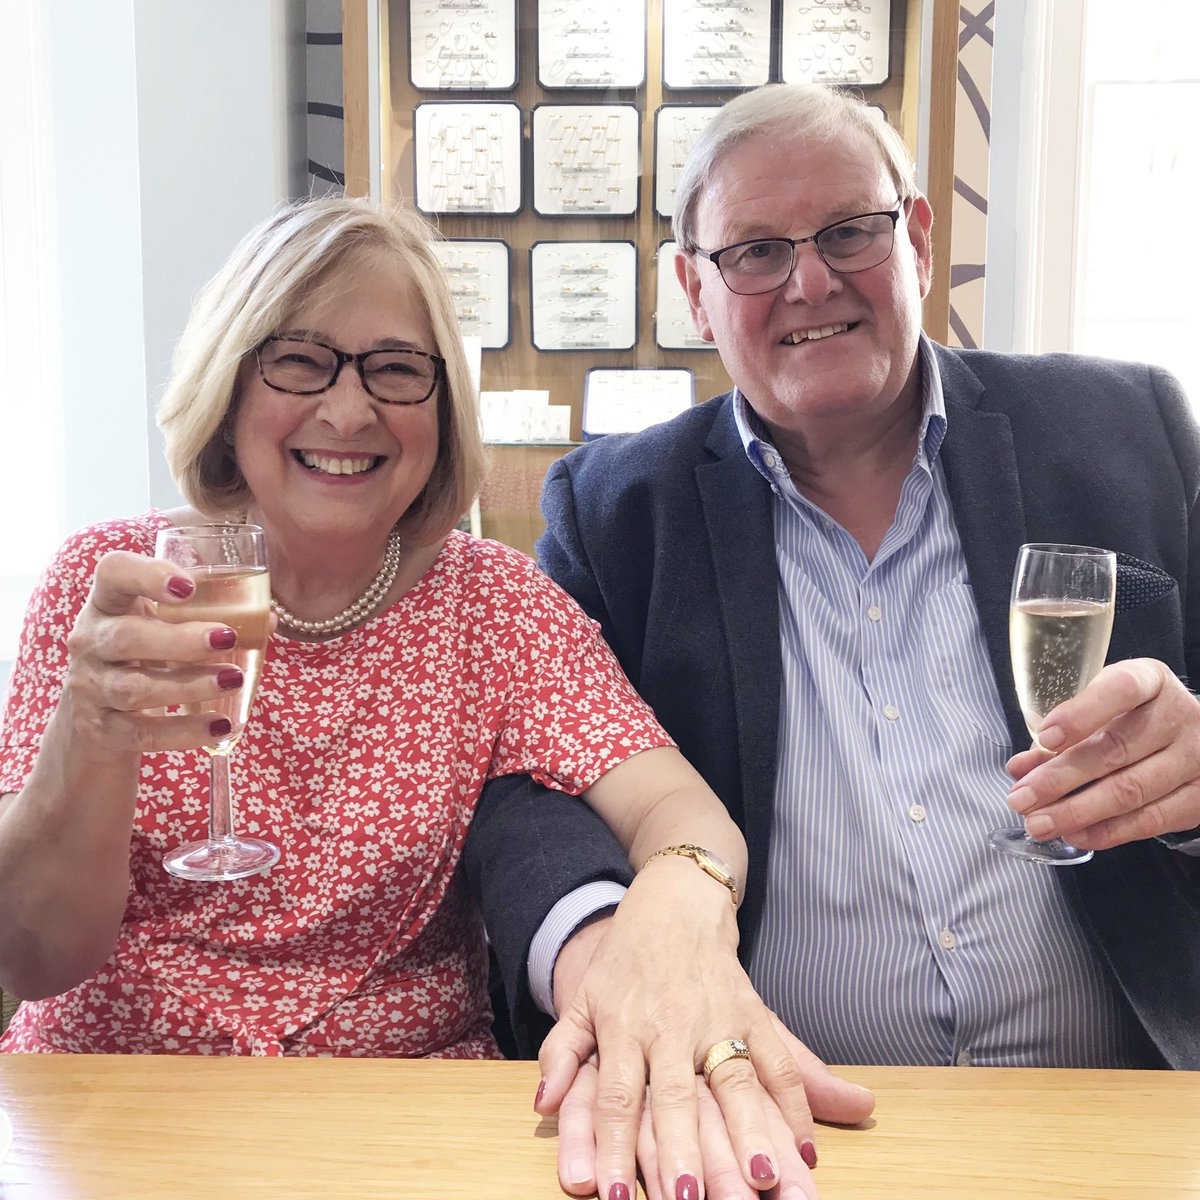 test Twitter Media - We can't help but smile at this photo! 🥰 We recently remade a long lost engagement ring for this couple from memory & research by one of our jewellery designers. He re-proposed with the it and she was absolutely delighted, her face says it all! 👏🏻 #relationshipgoals https://t.co/Ciianvl5zU